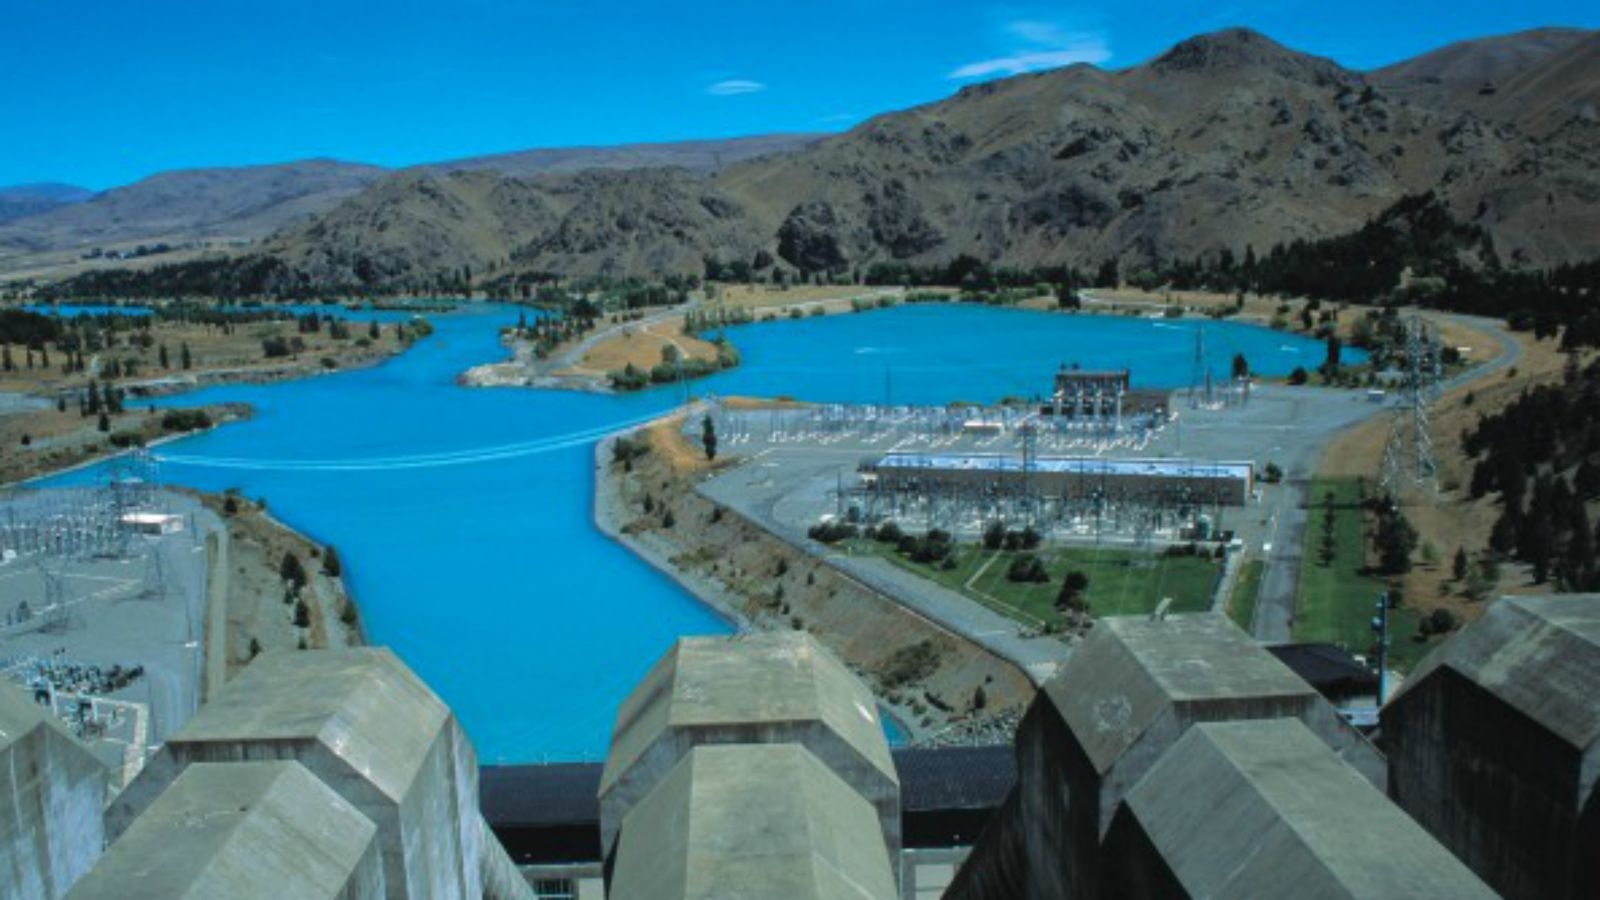 image of Waitaki dam